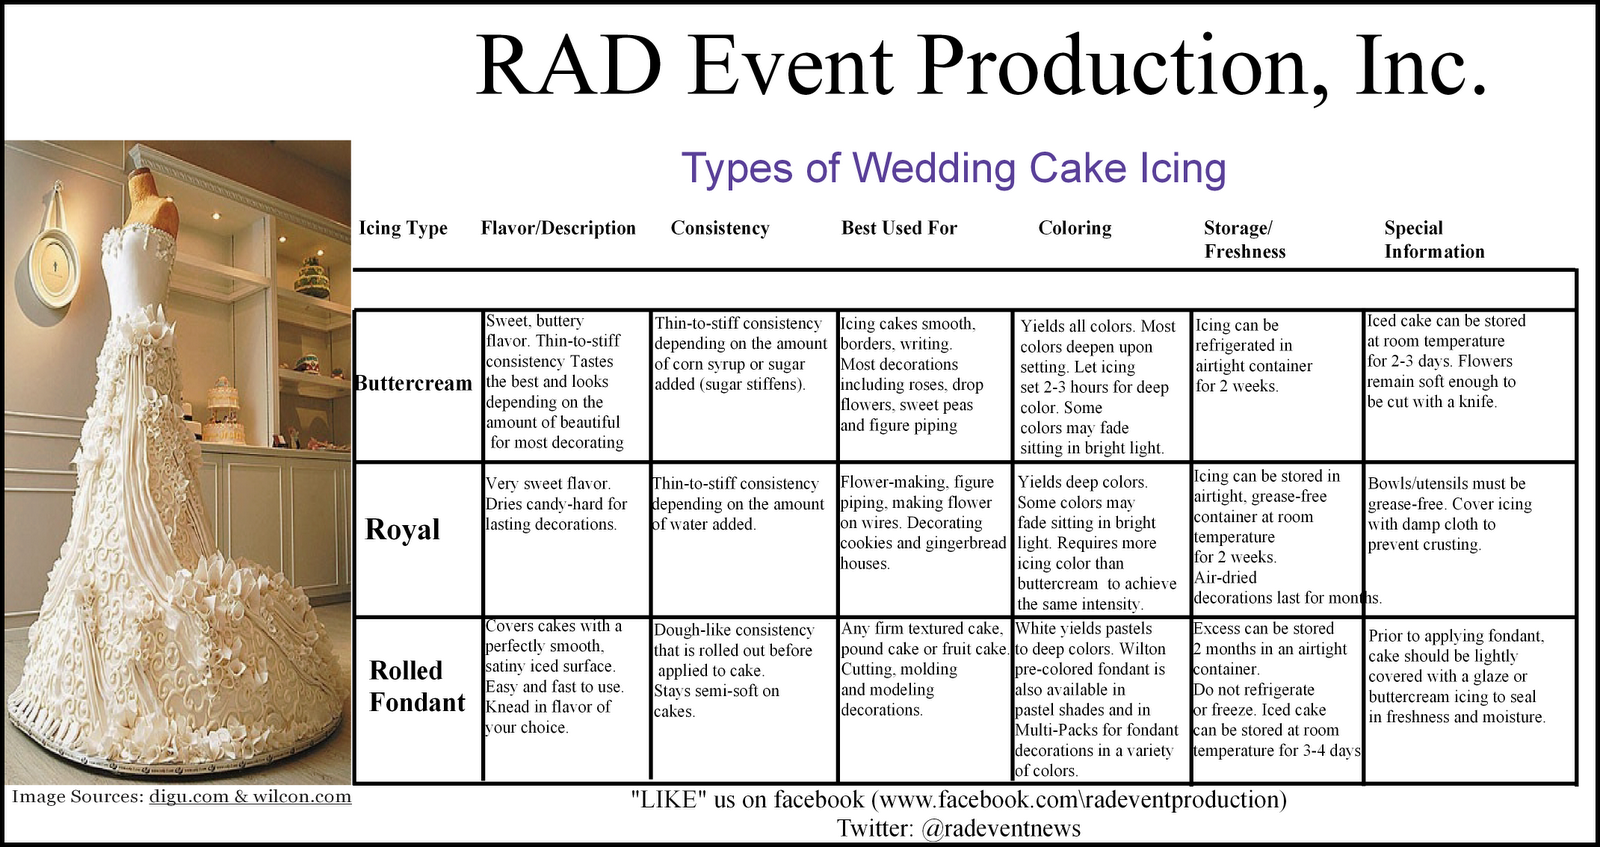 rad event production inc types of wedding cake icing